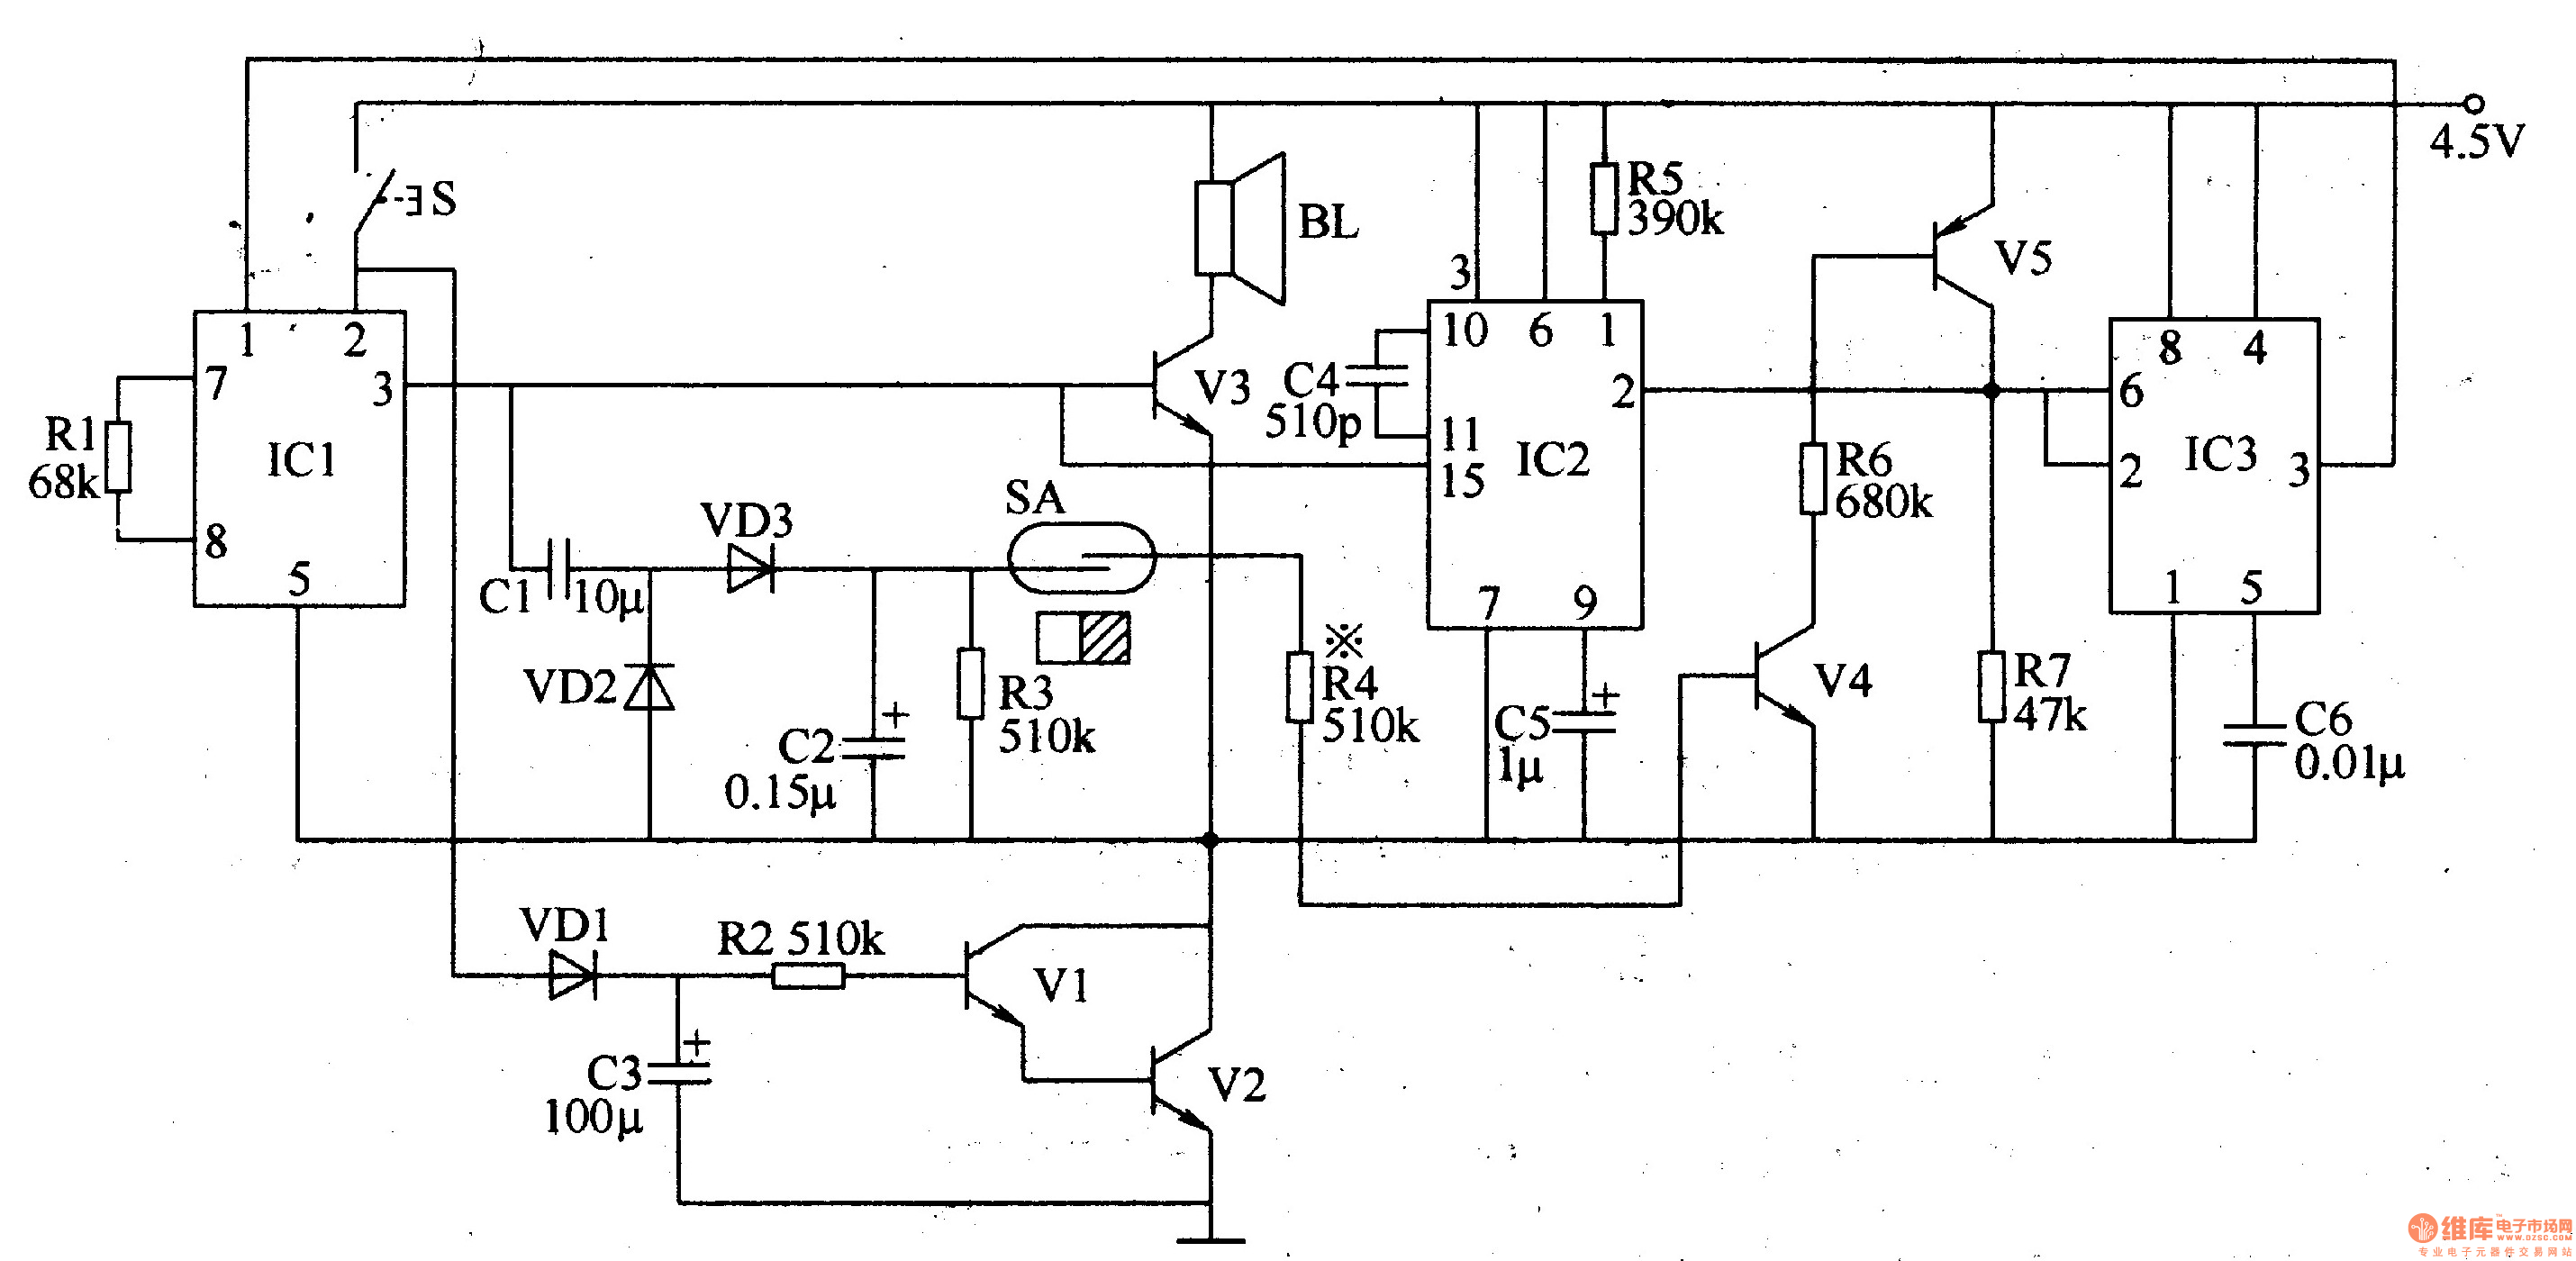 Results Page 6 About Switches Searching Circuits At Non Contact Tachometer Circuit Using 8051 Microcontroller Eeweb Politely Welcoming Electronic Doorbell